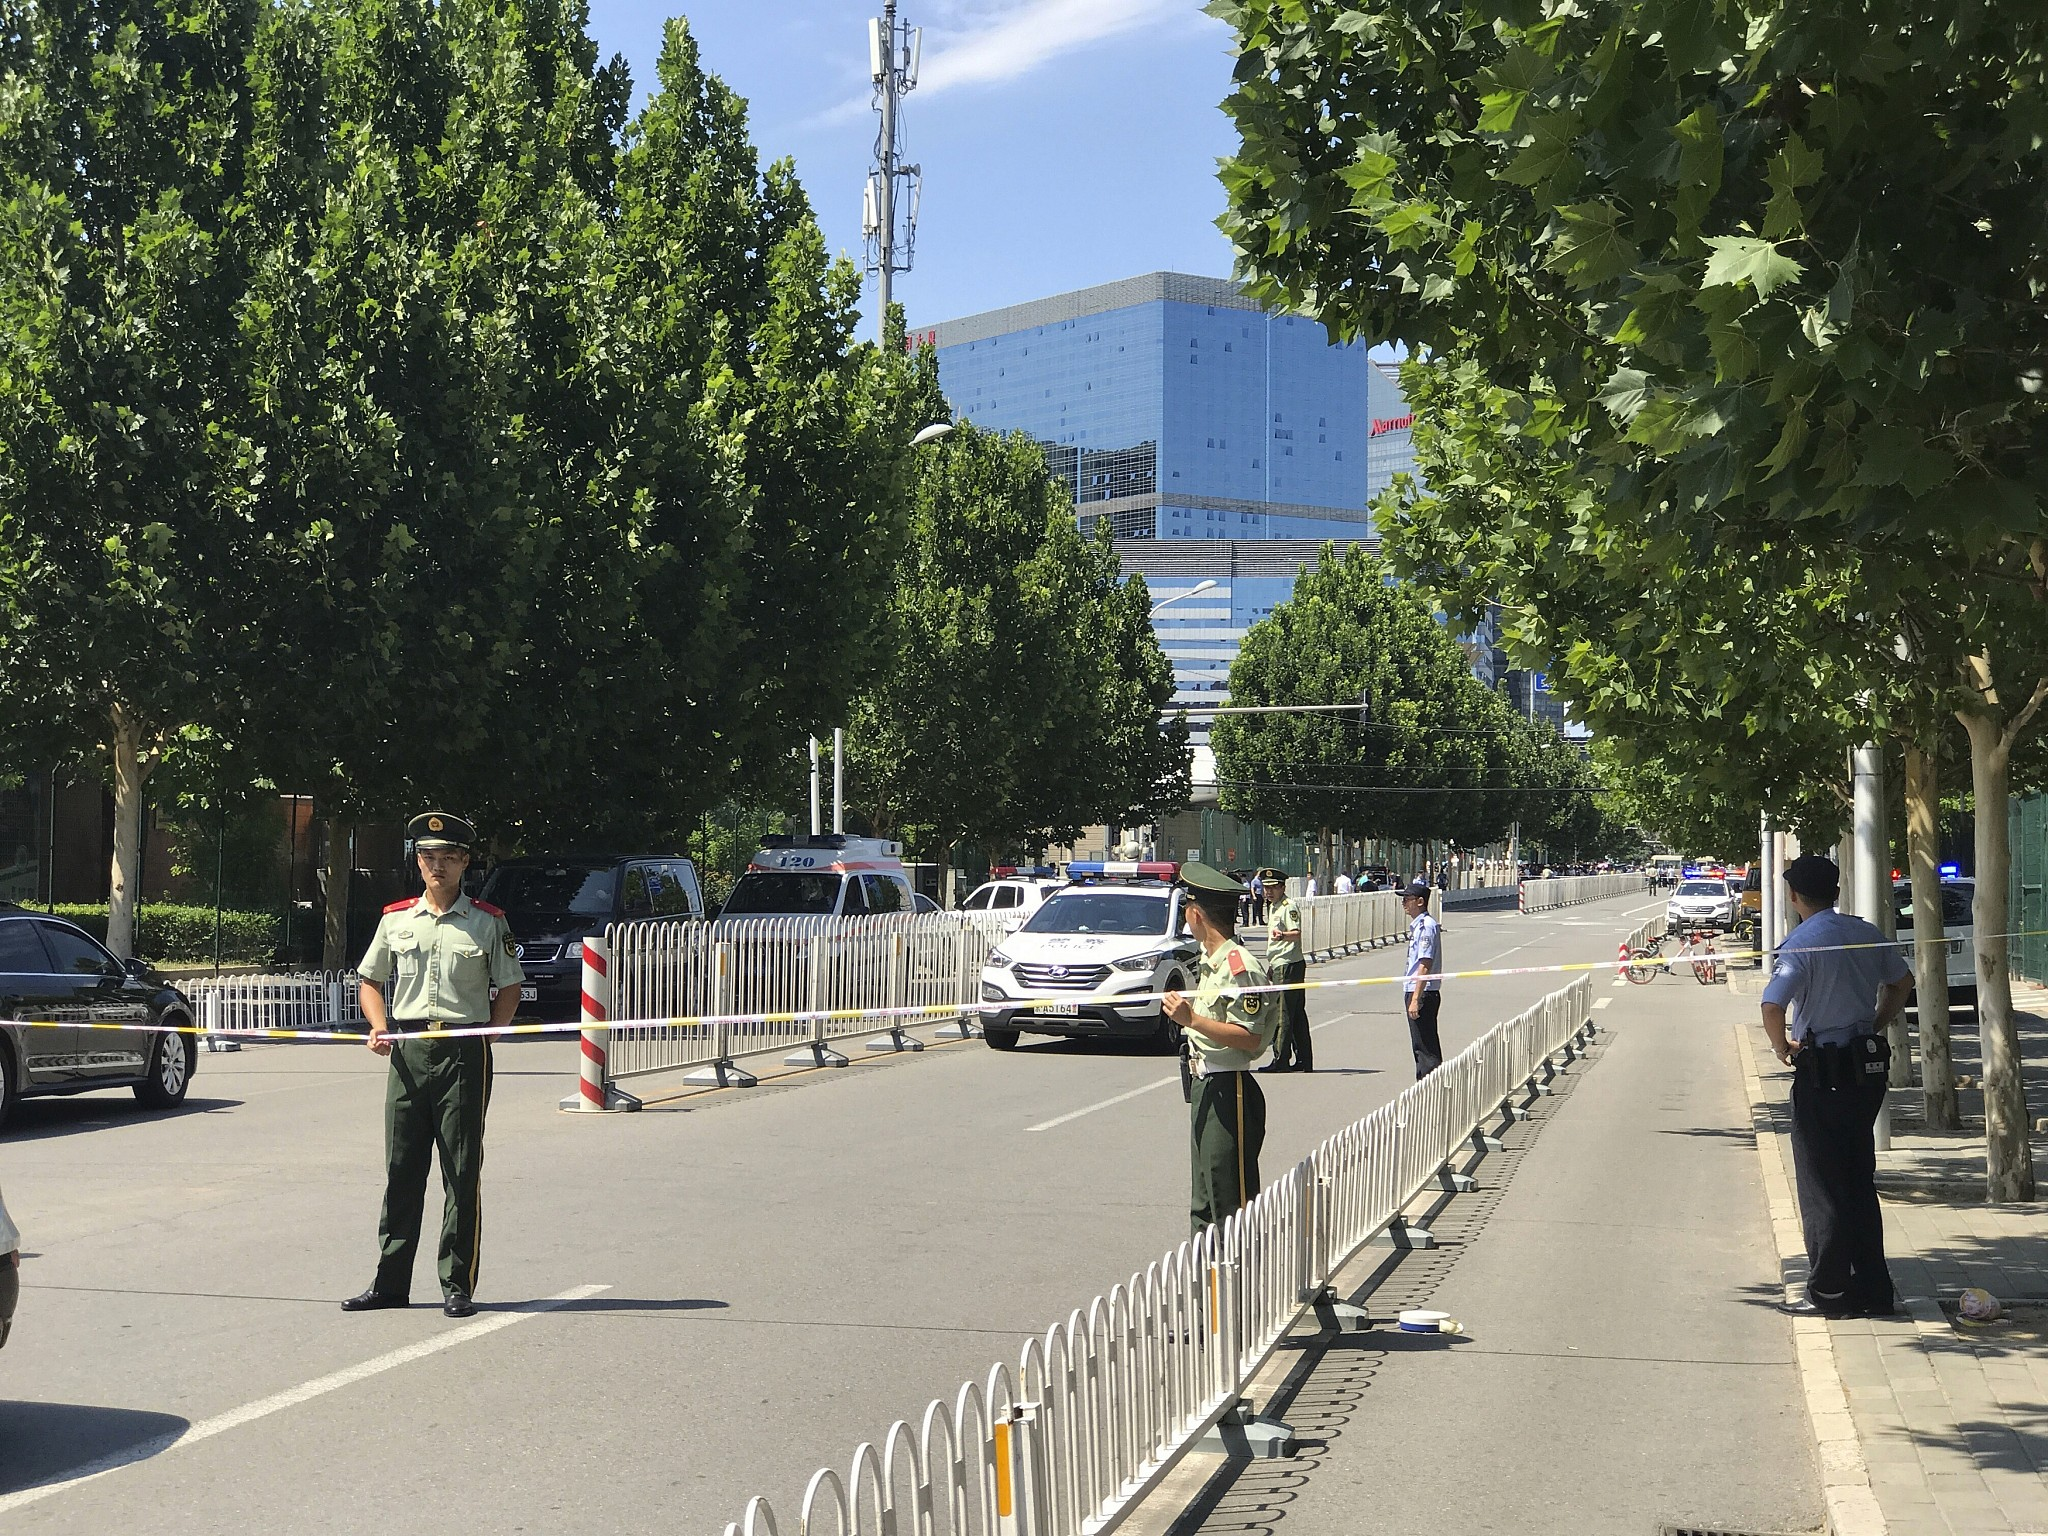 Suspected self-immolation near US Embassy in Beijing, according to Chinese state media